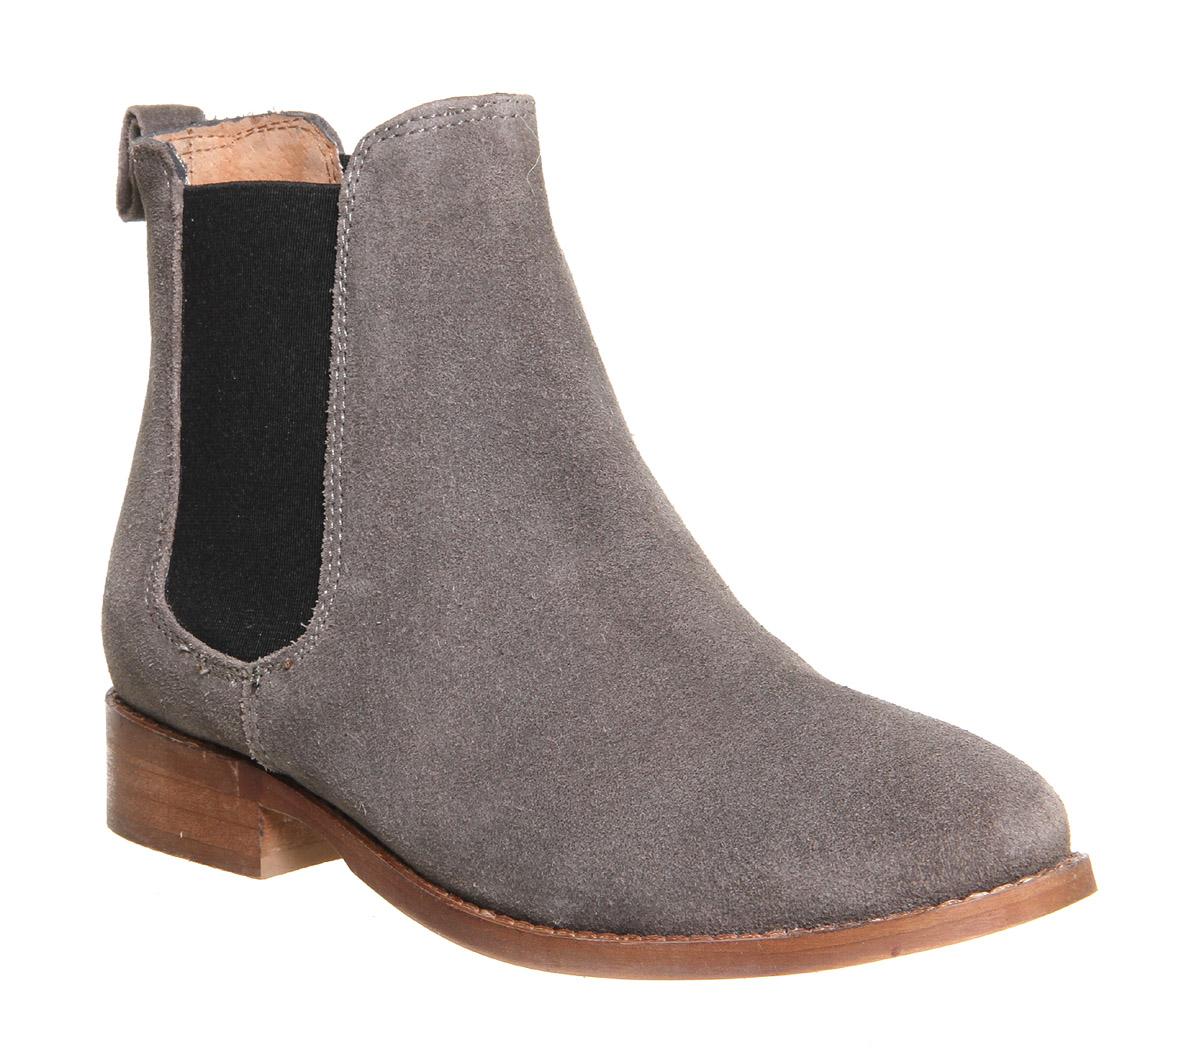 43333ddd795d7 Sentinel Womens OFFICE Grey Suede Pull On Ankle Boots Size UK 4  Ex-Display